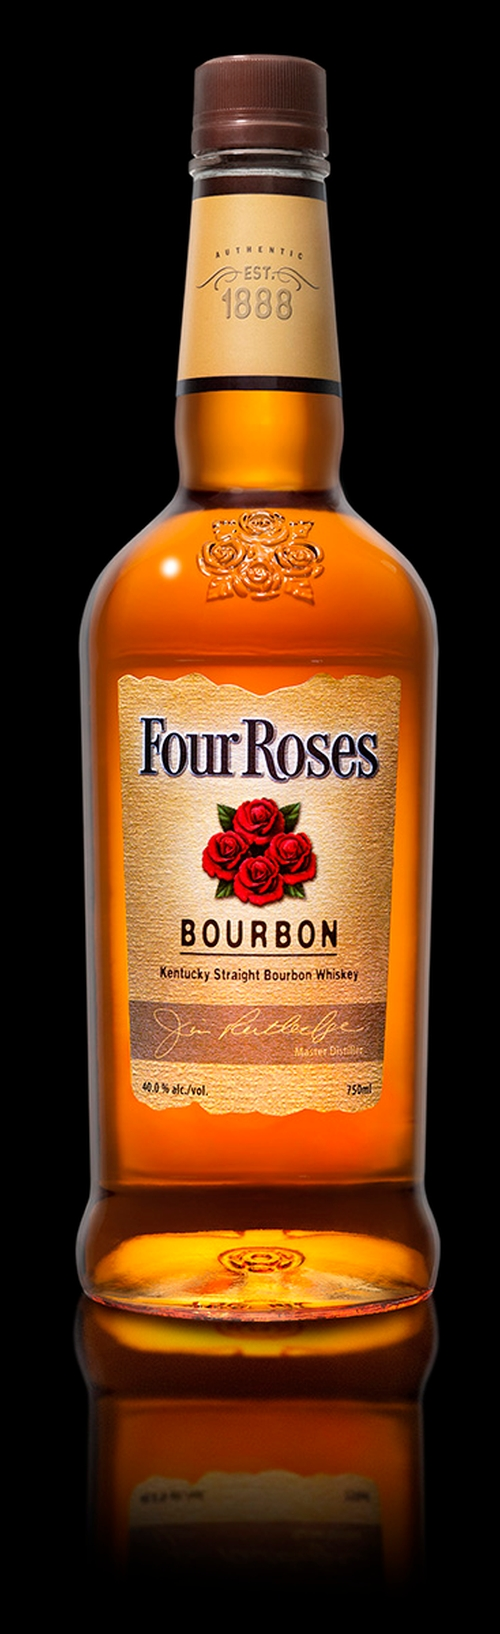 Yellow Label Bourbon Whiskey by Four Roses in Jessica Jones